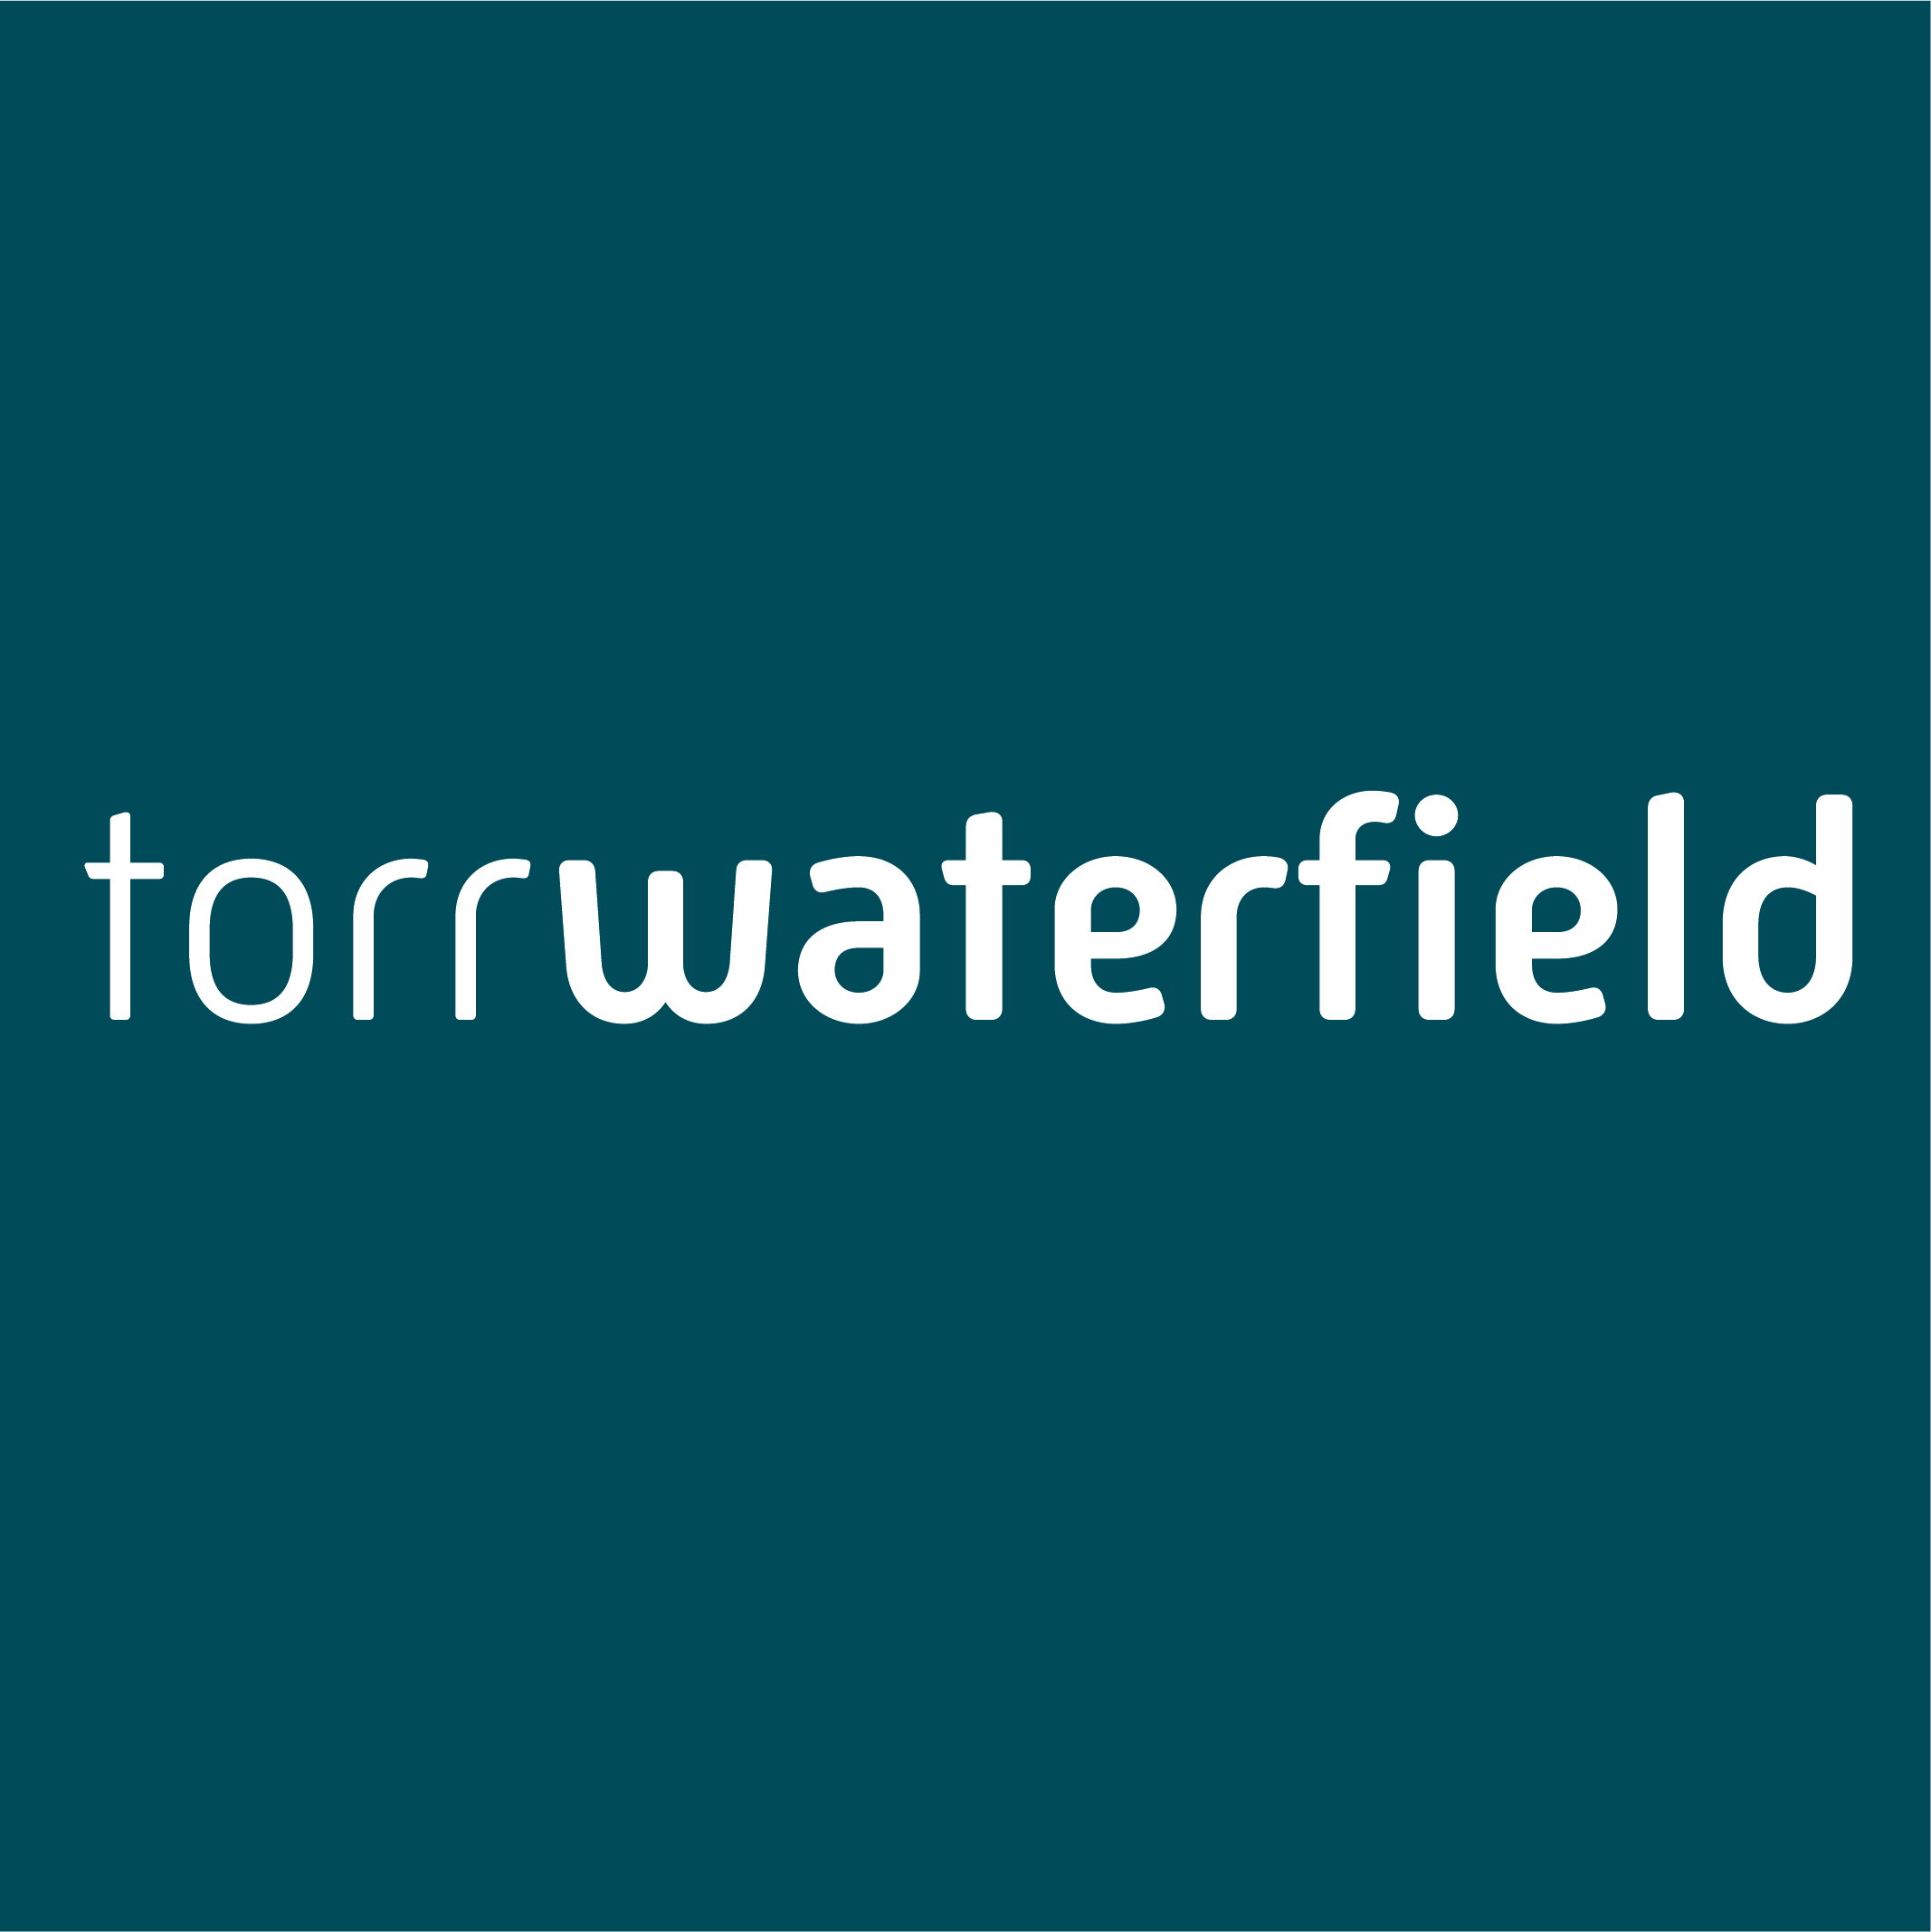 Mail a Big File to torr waterfield